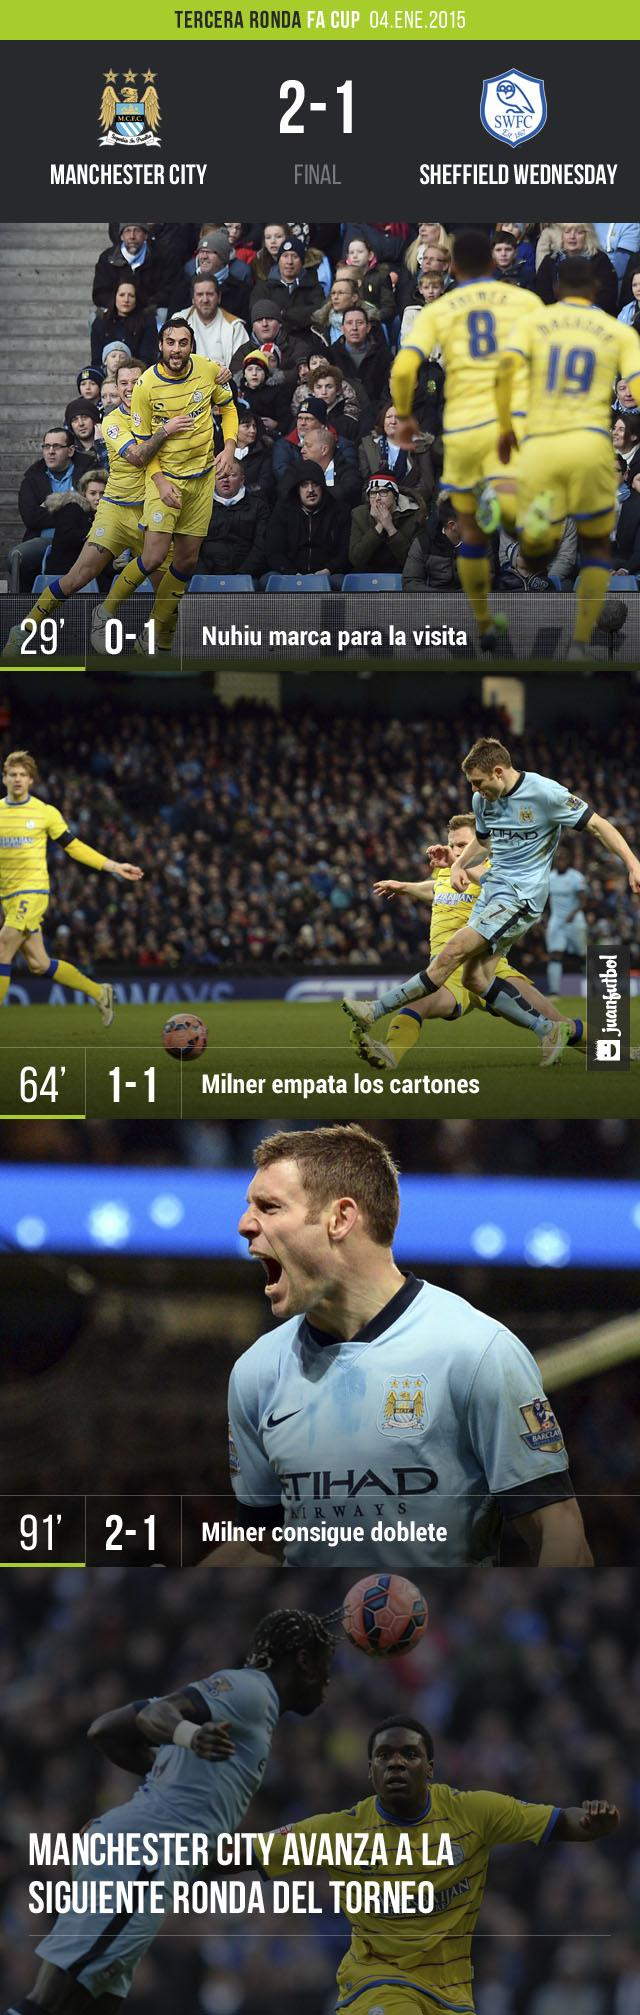 Manchester City sufrió para derrotar 2-1 al Sheffield Wednesday en la FA Cup.